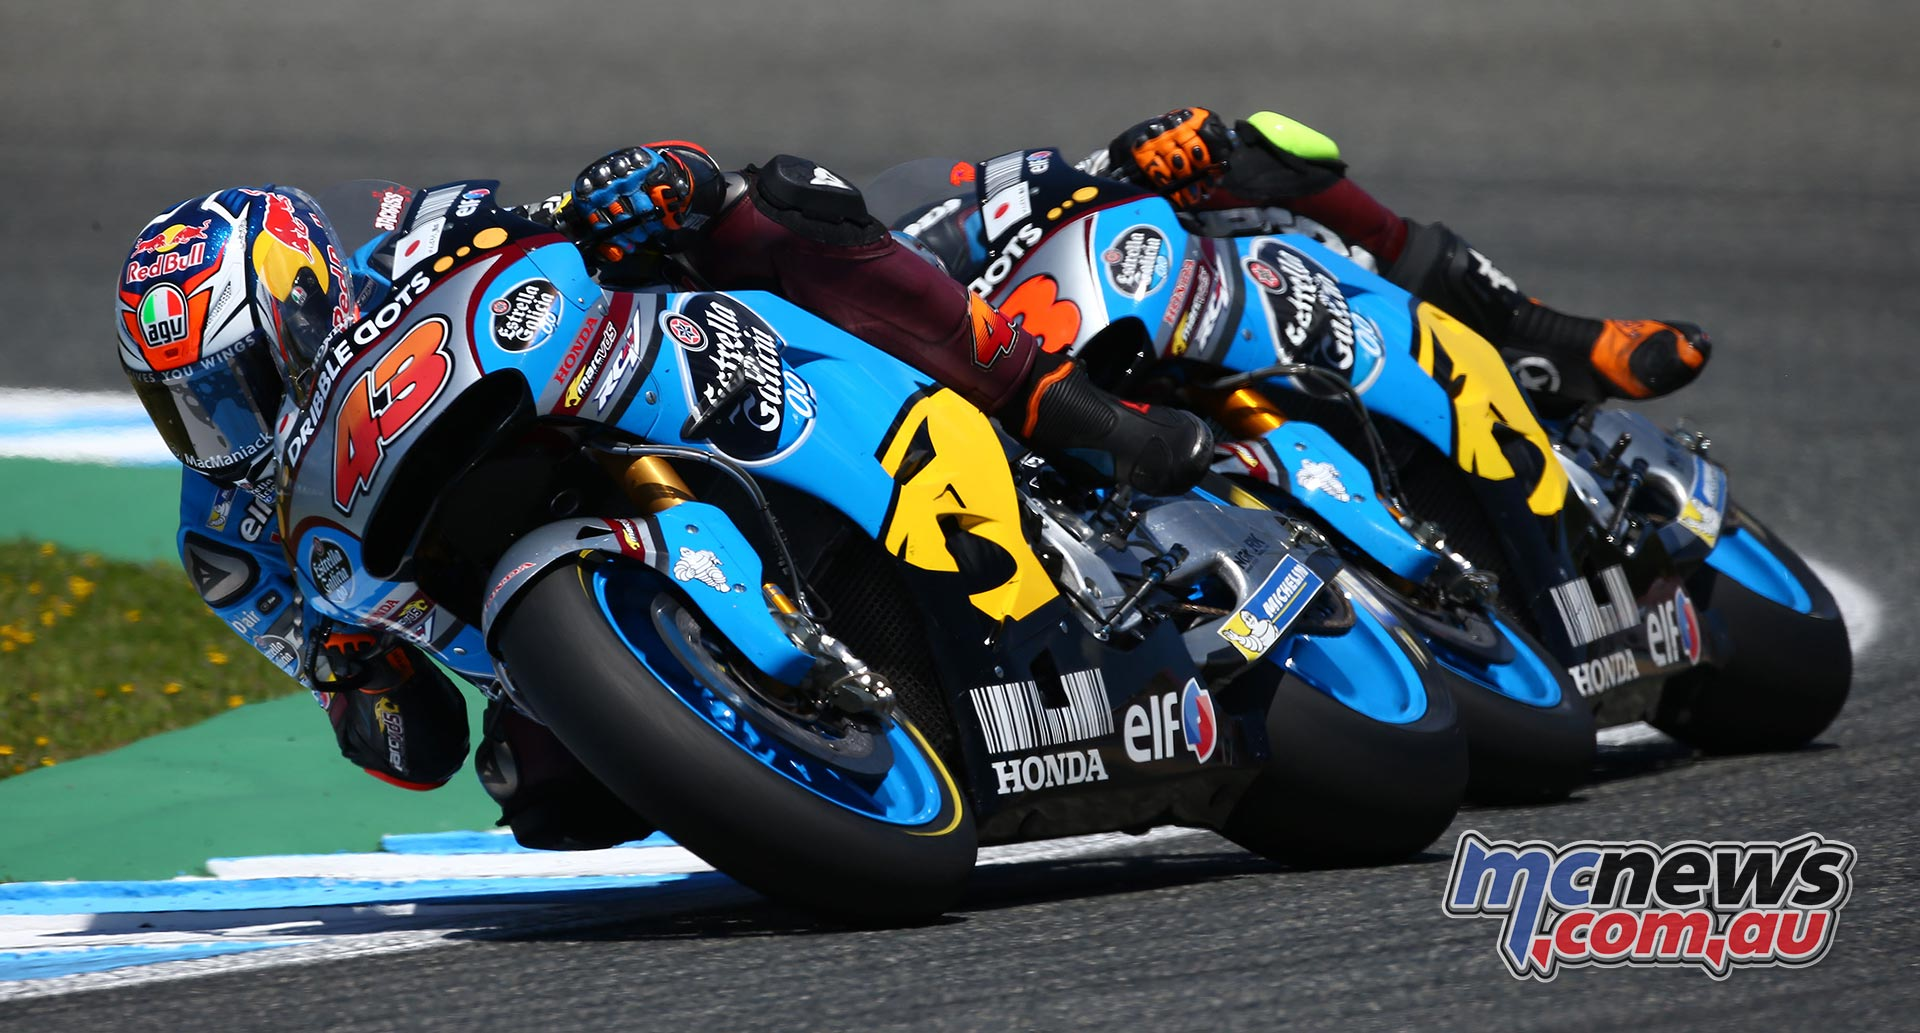 Jack Miller and Tito Rabat in action at Jerez 2016